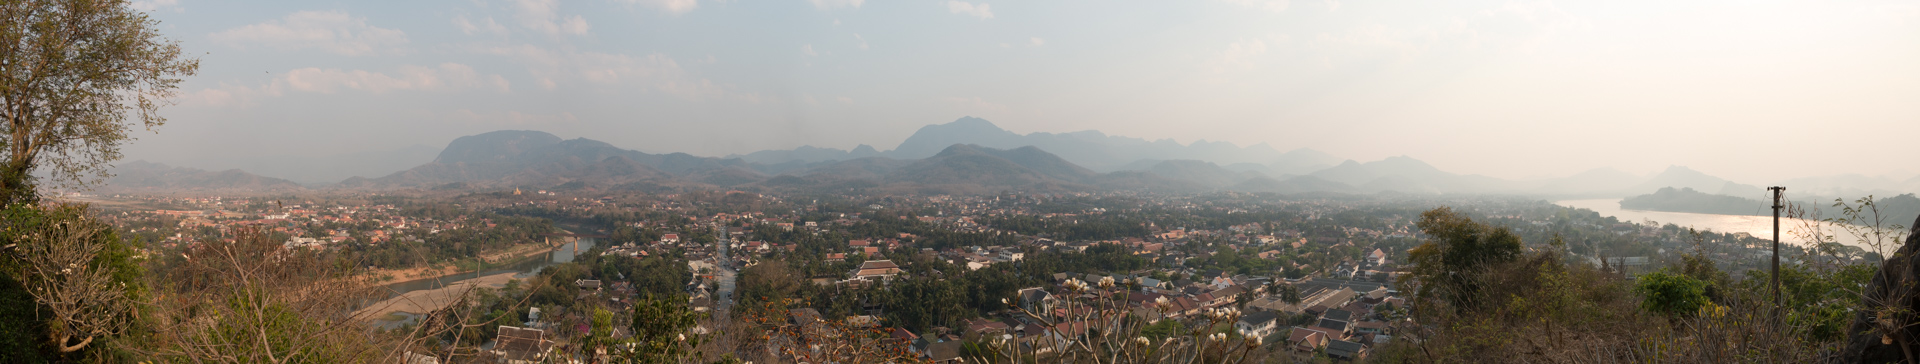 Panoramic from Mount Phousi Luang Prabang